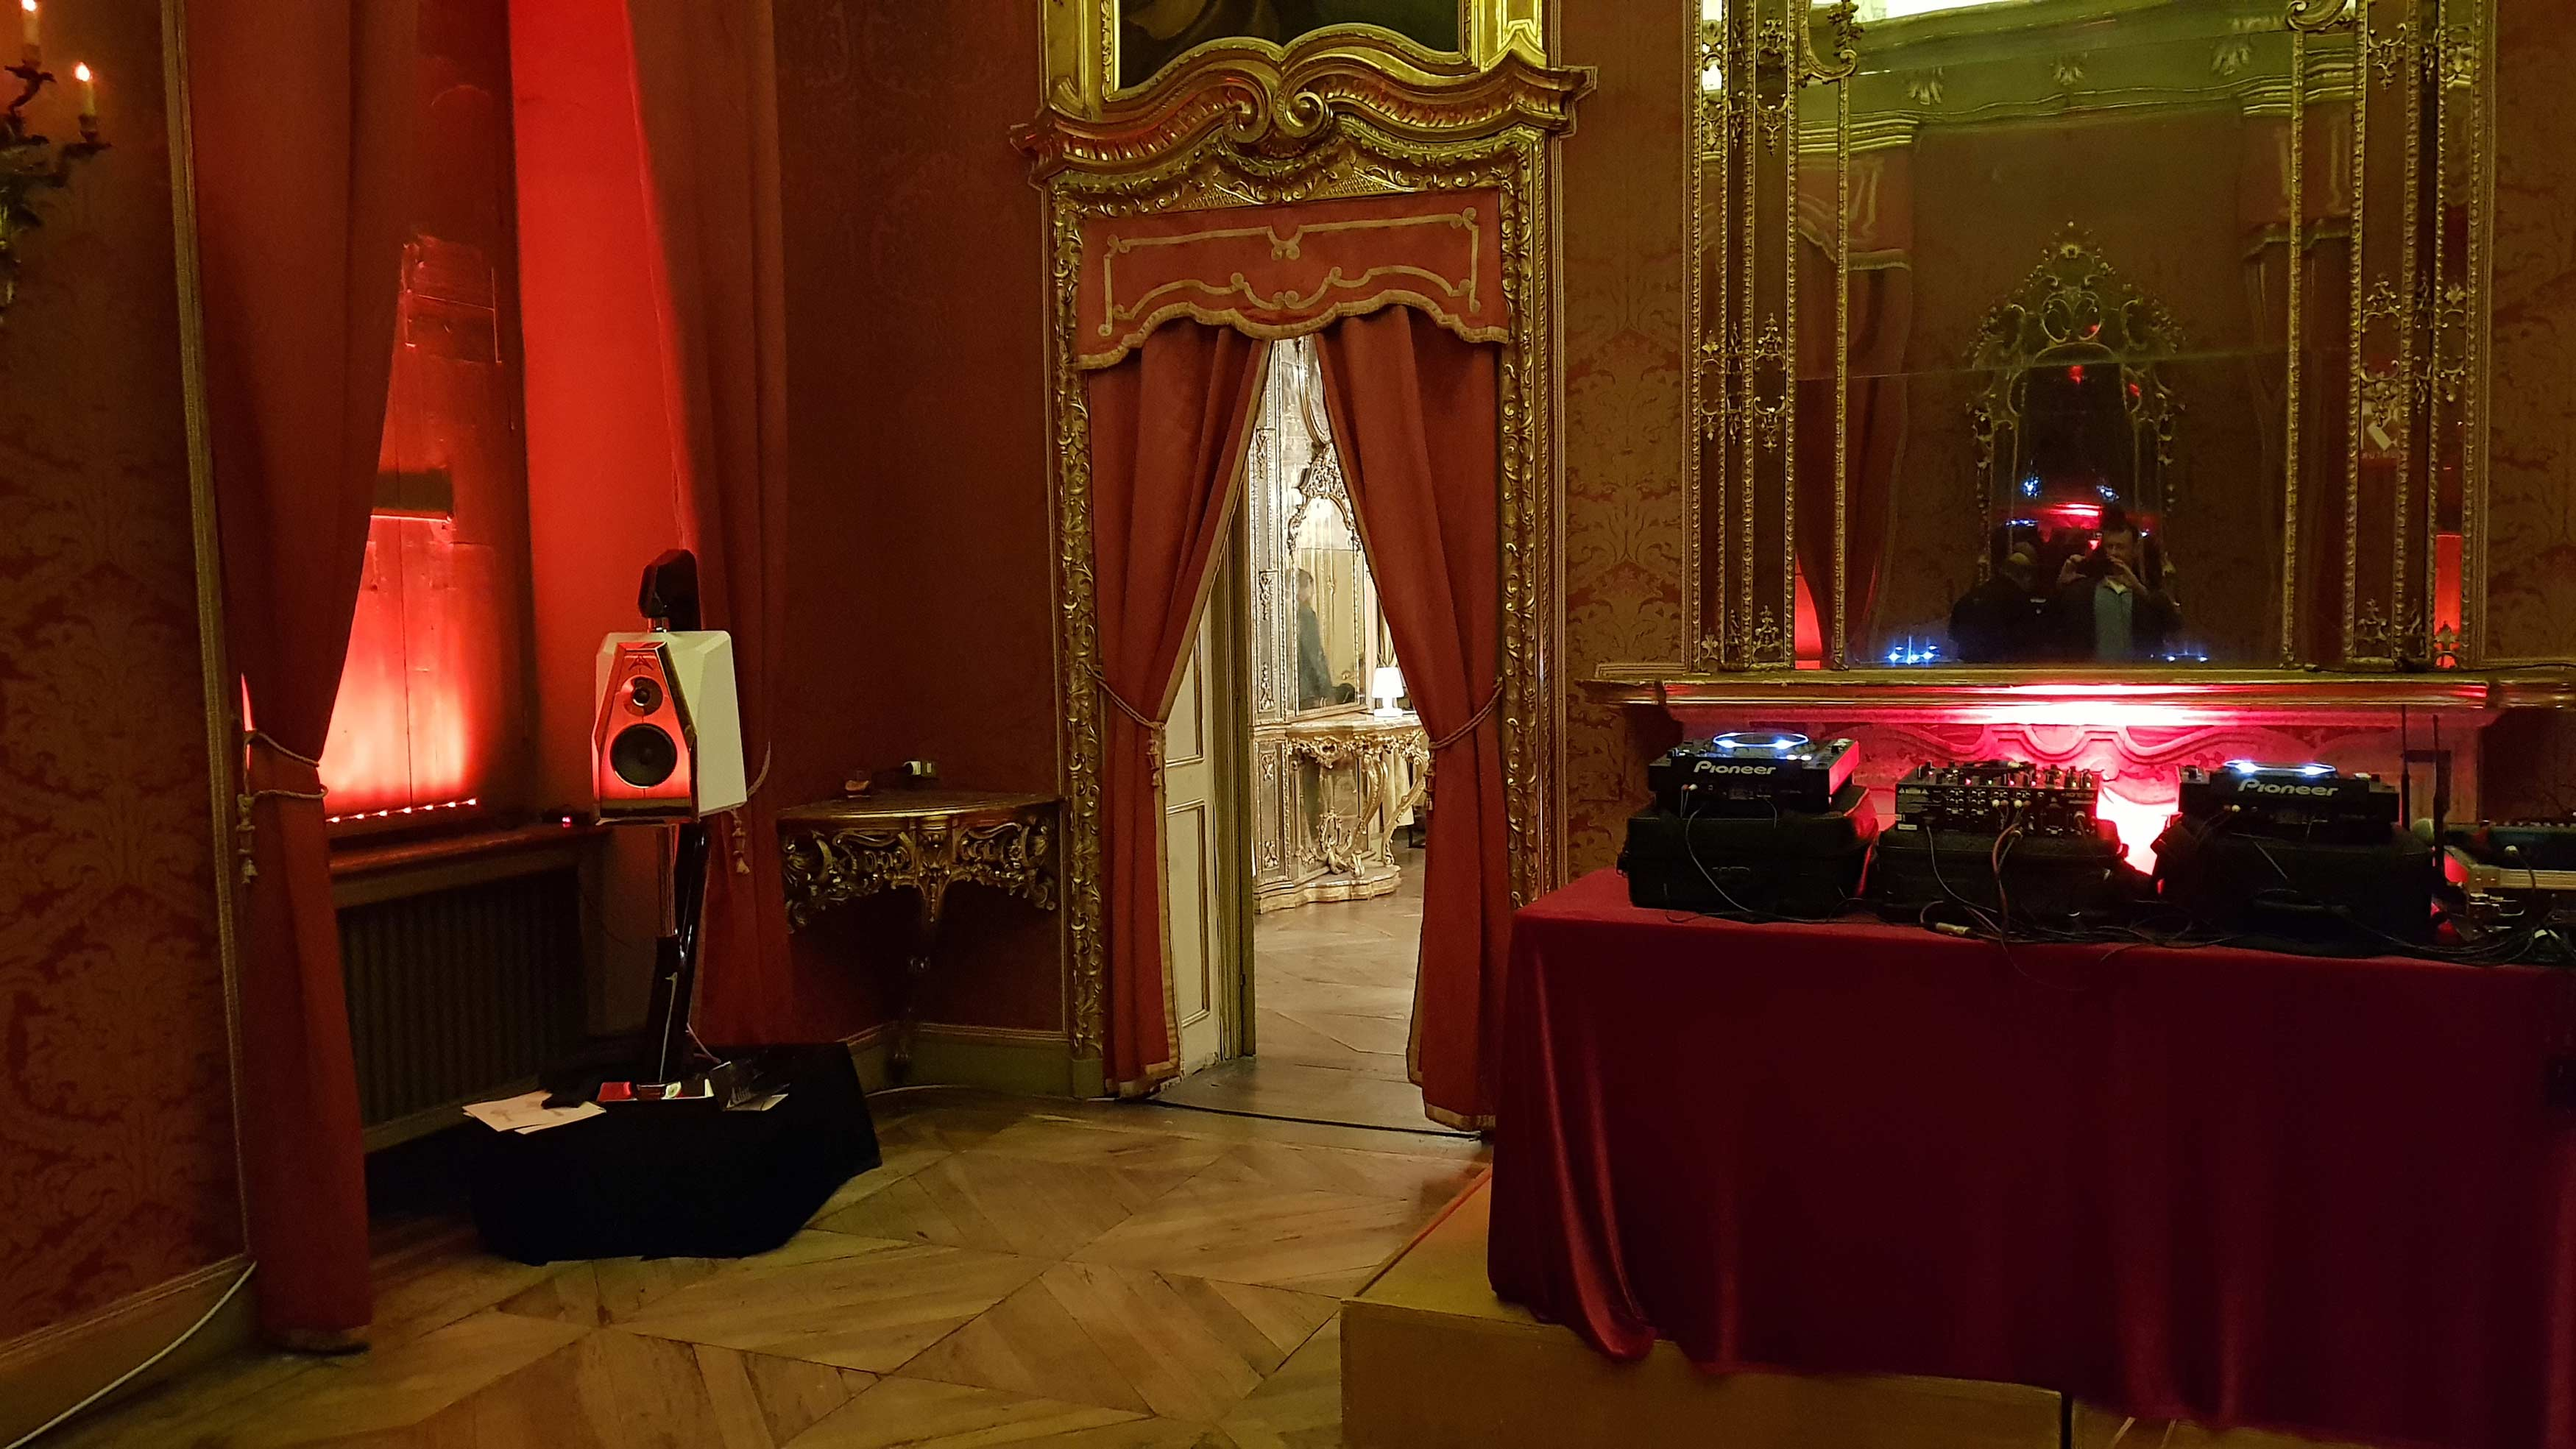 Audiovisual Art in red room Turin